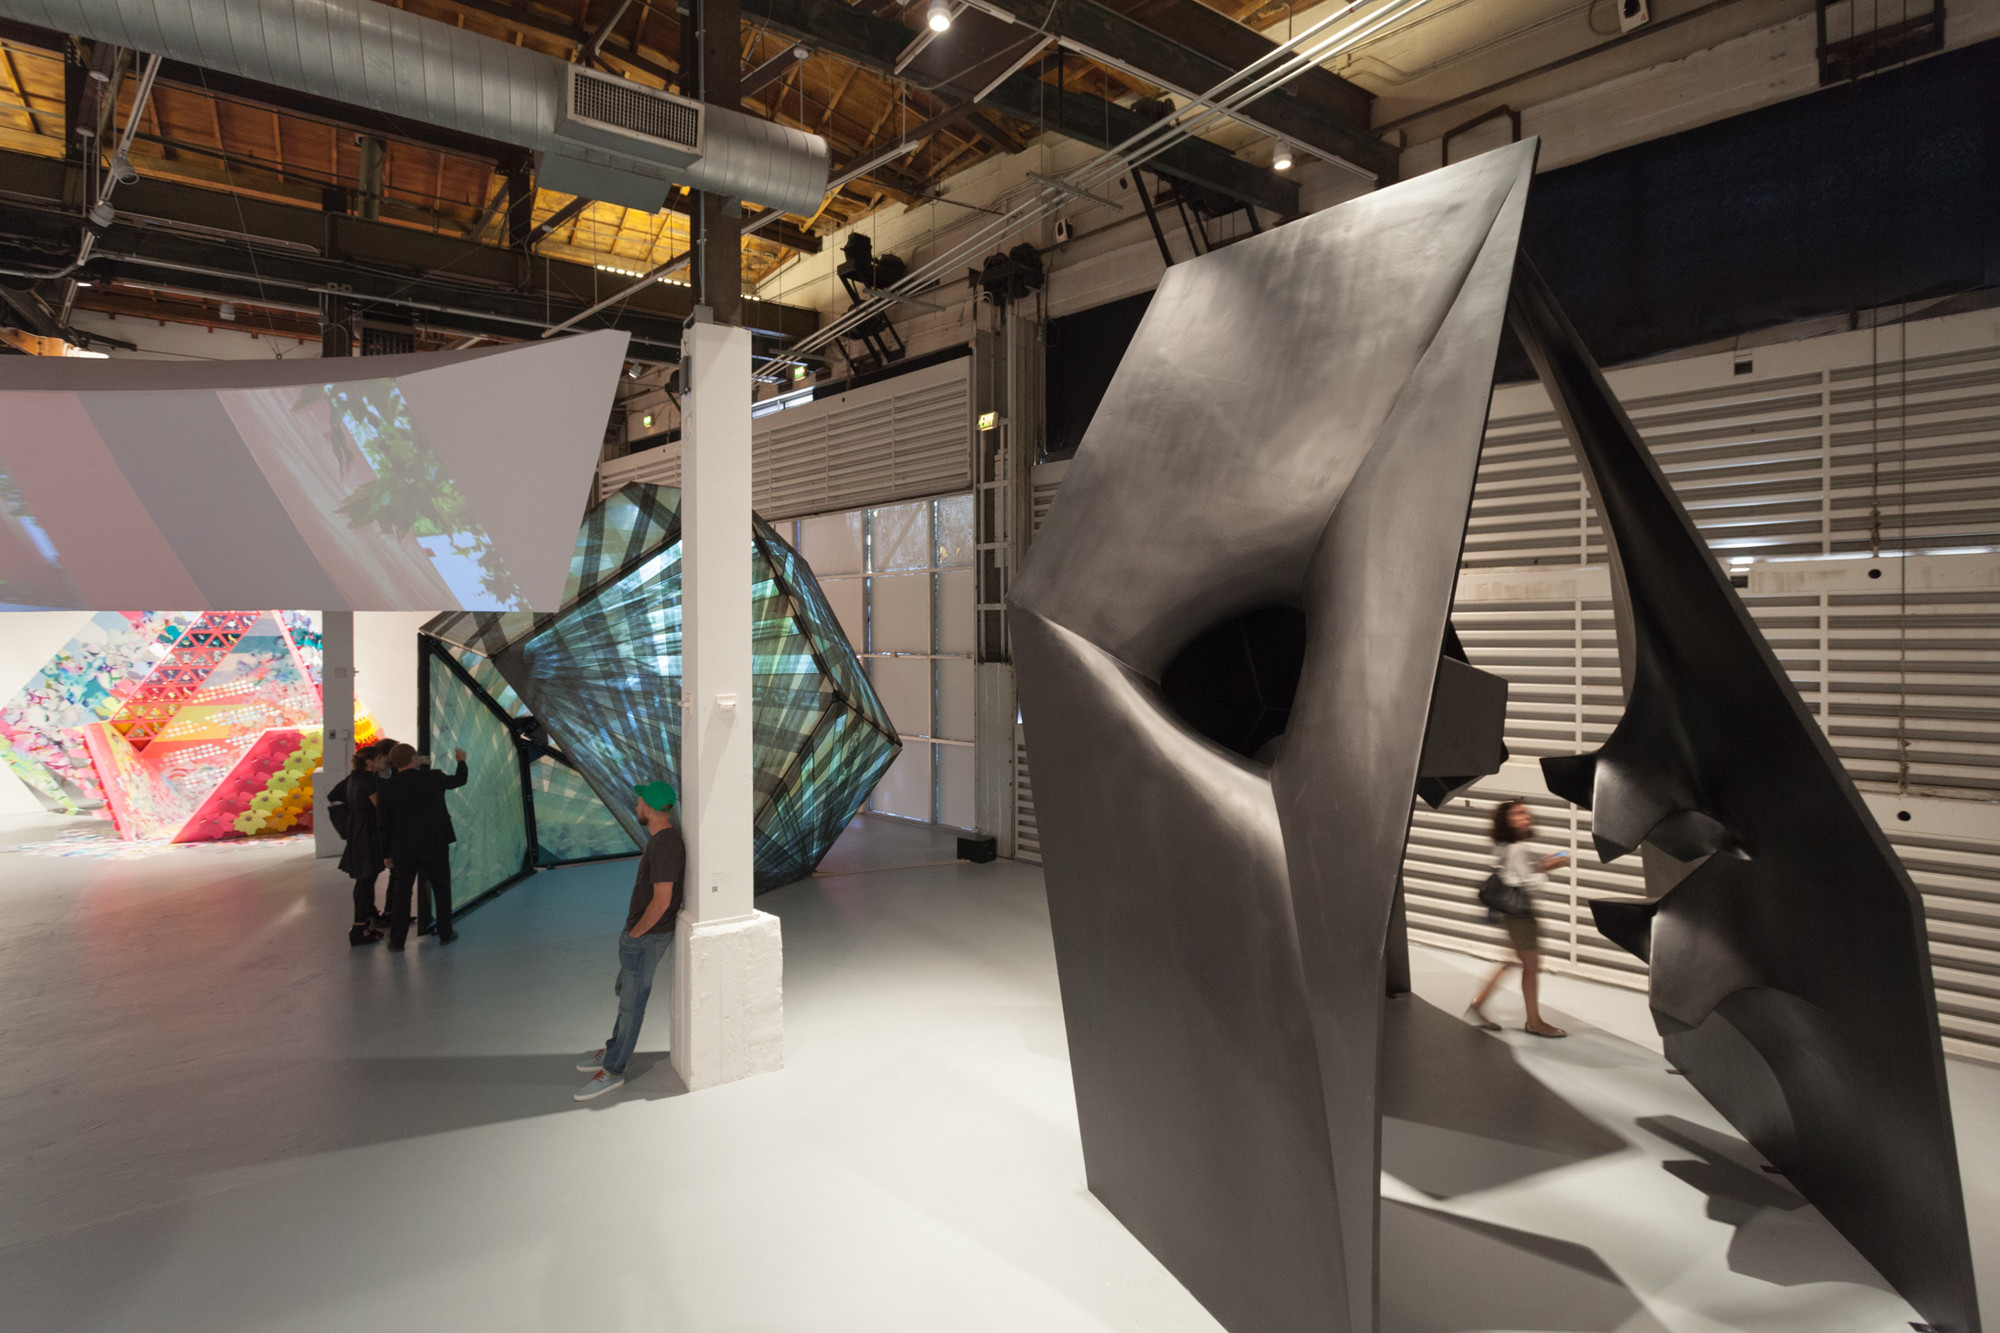 Foreground: Pavilion by Tom Wiscombe Design, Middleground: Textile Room Pavilion by P-A-T-T-E-R-N-S at The Museum of Contemparary Art, Los Angeles. Image © Taiyo Watanabe